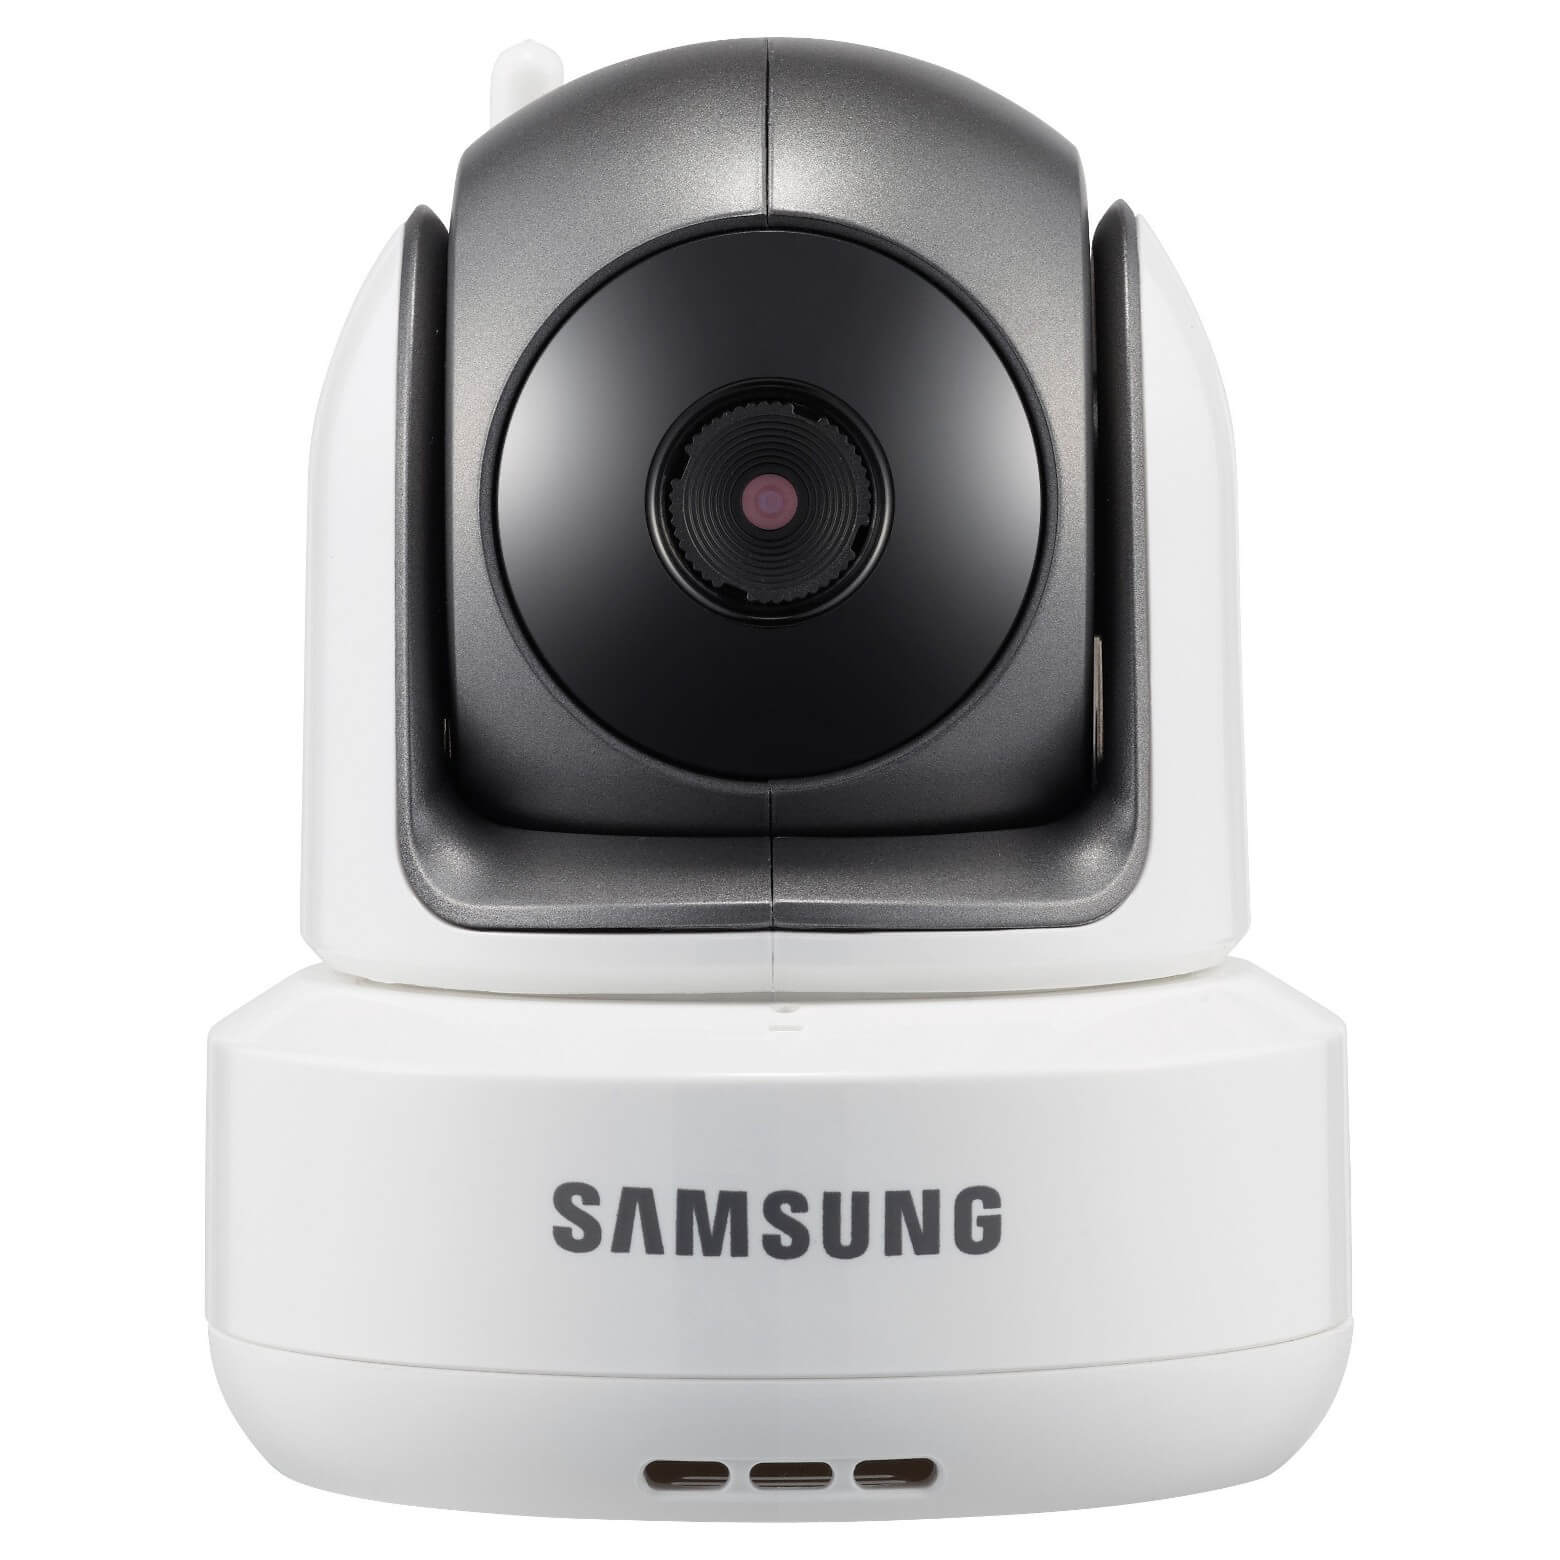 The Top 10 Picks for Baby Camera Monitors- Samsung Baby Monitor